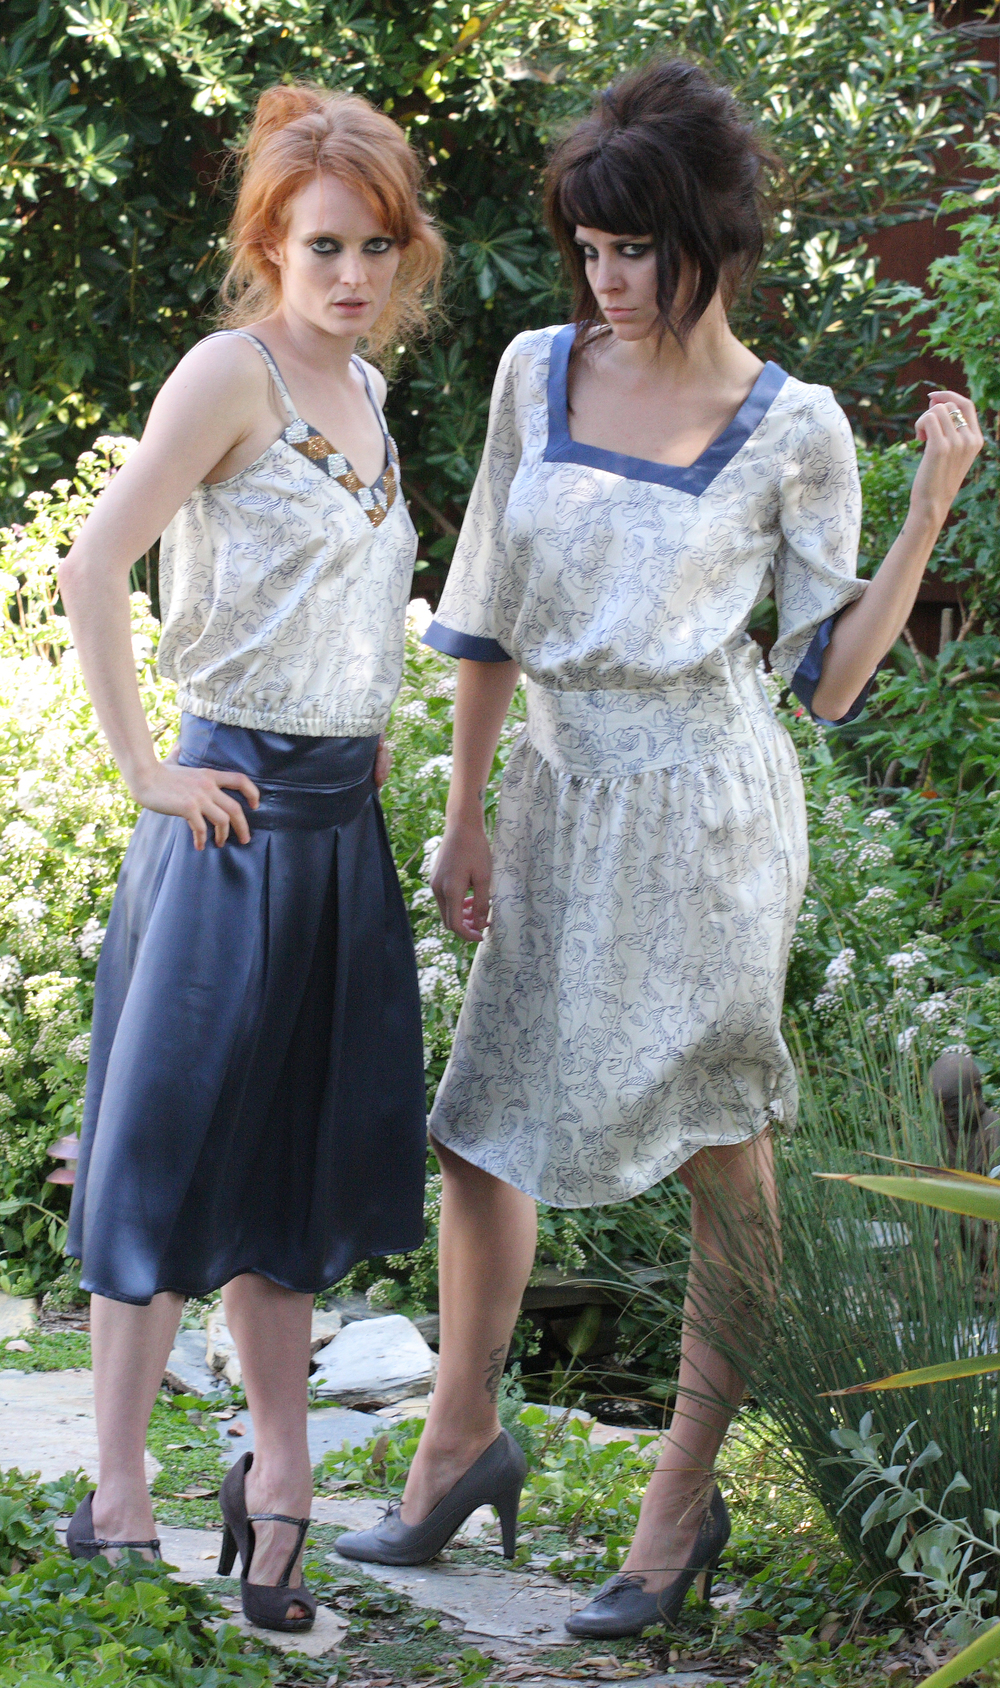 Double Strap V-Cami in Horse Print Silk Charmeuse w/ Beaded Trim  High Waist Pleat Skirt w/ Pocket in Blue Silk Charmeuse  Quilt Waist Square Neck Dress in Horse Print Silk Charmeuse